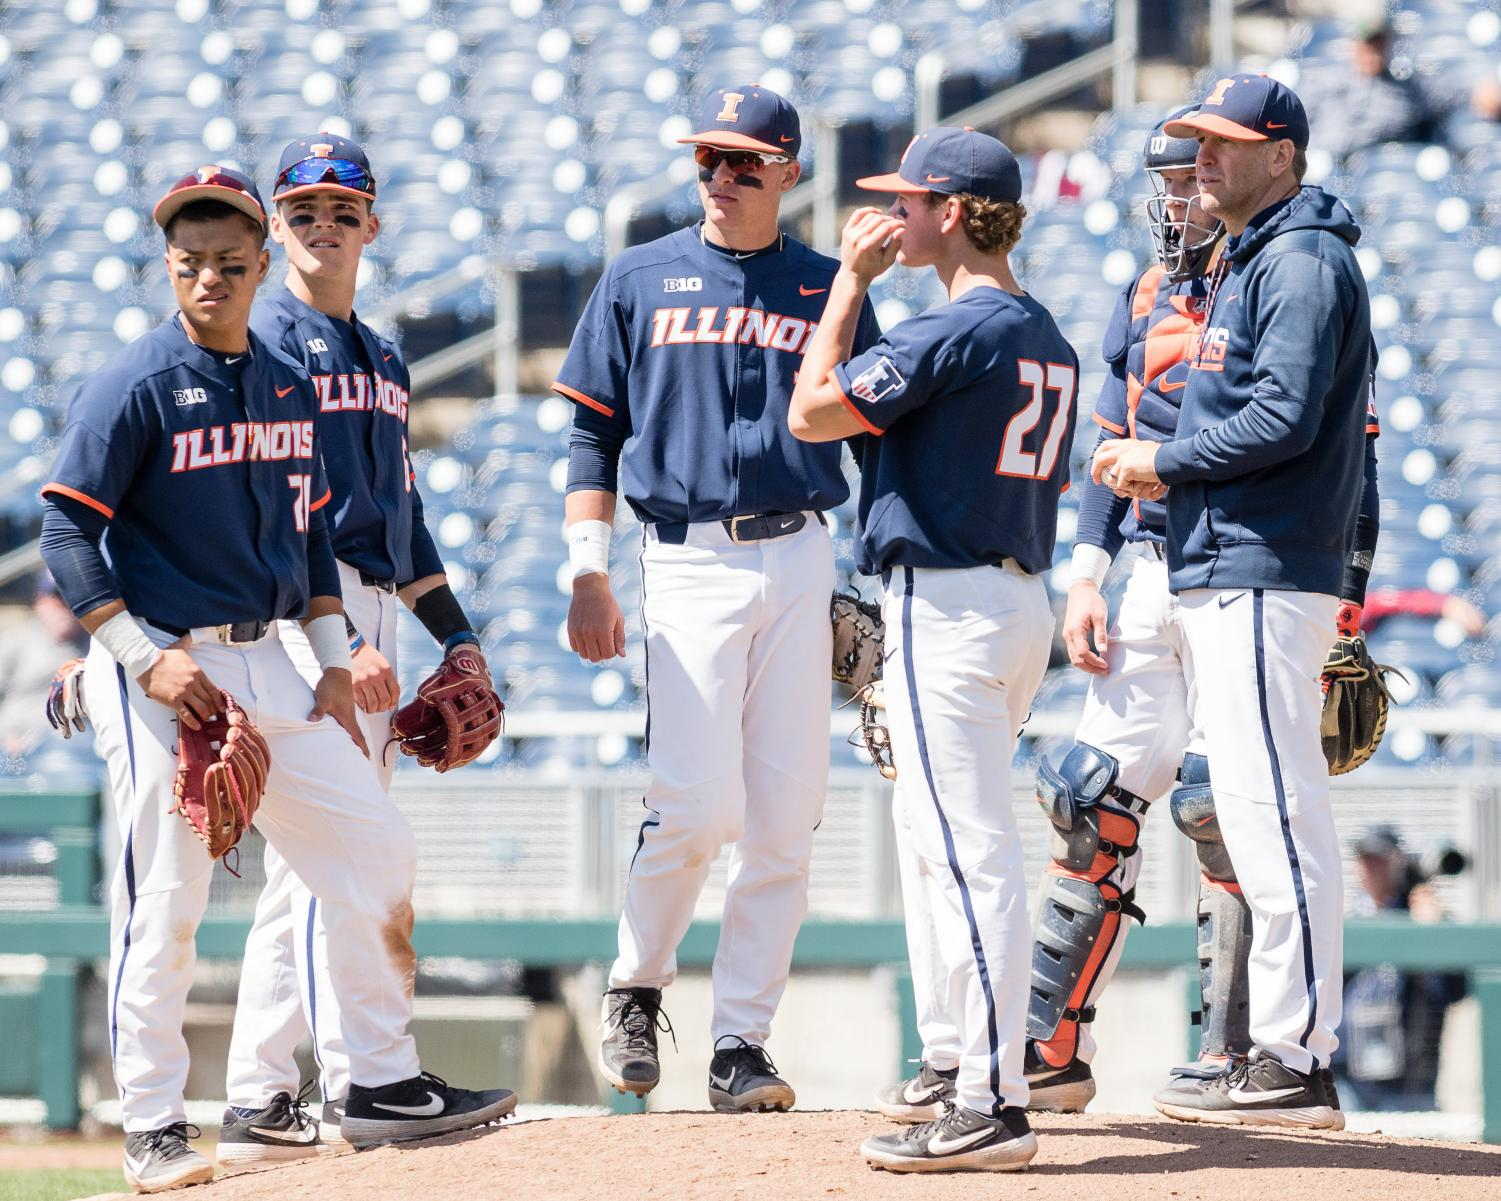 Members of the Illinois infield look to the bullpen for the next pitcher during the game against Maryland in the Big Ten Tournament at TD Ameritrade Park on Wednesday, May 22, 2019. The Illini lost 6-2.  Austin Yattoni of The Daily Illini.